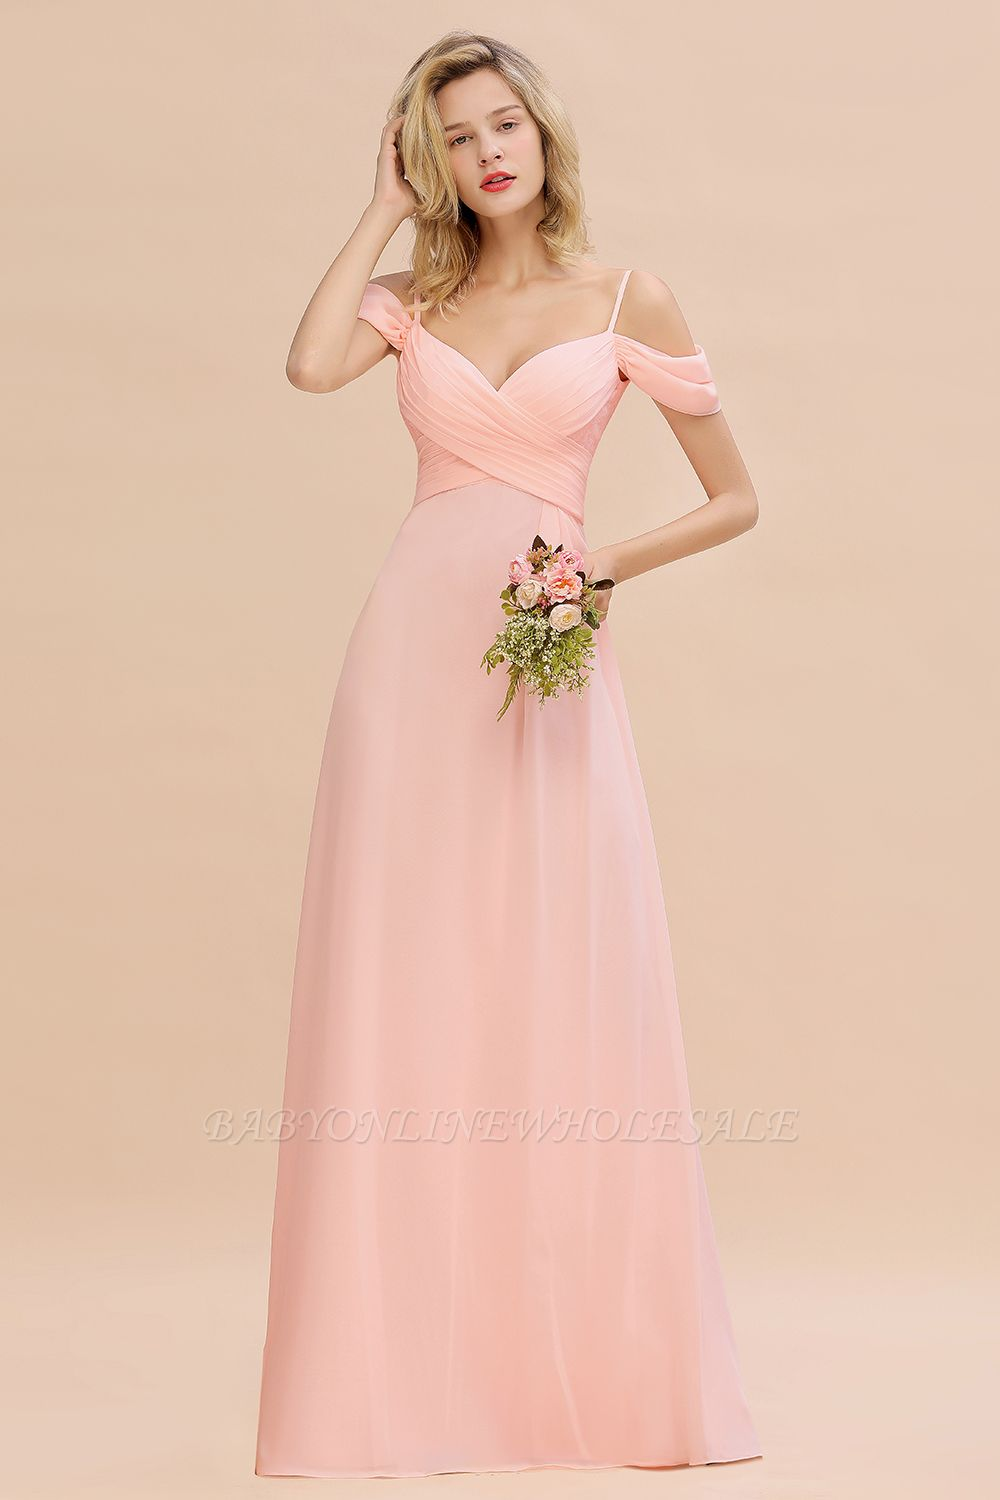 Spaghetti Straps Sweetheart Ruffles Bridesmaid Dress | Evening Dresses Online